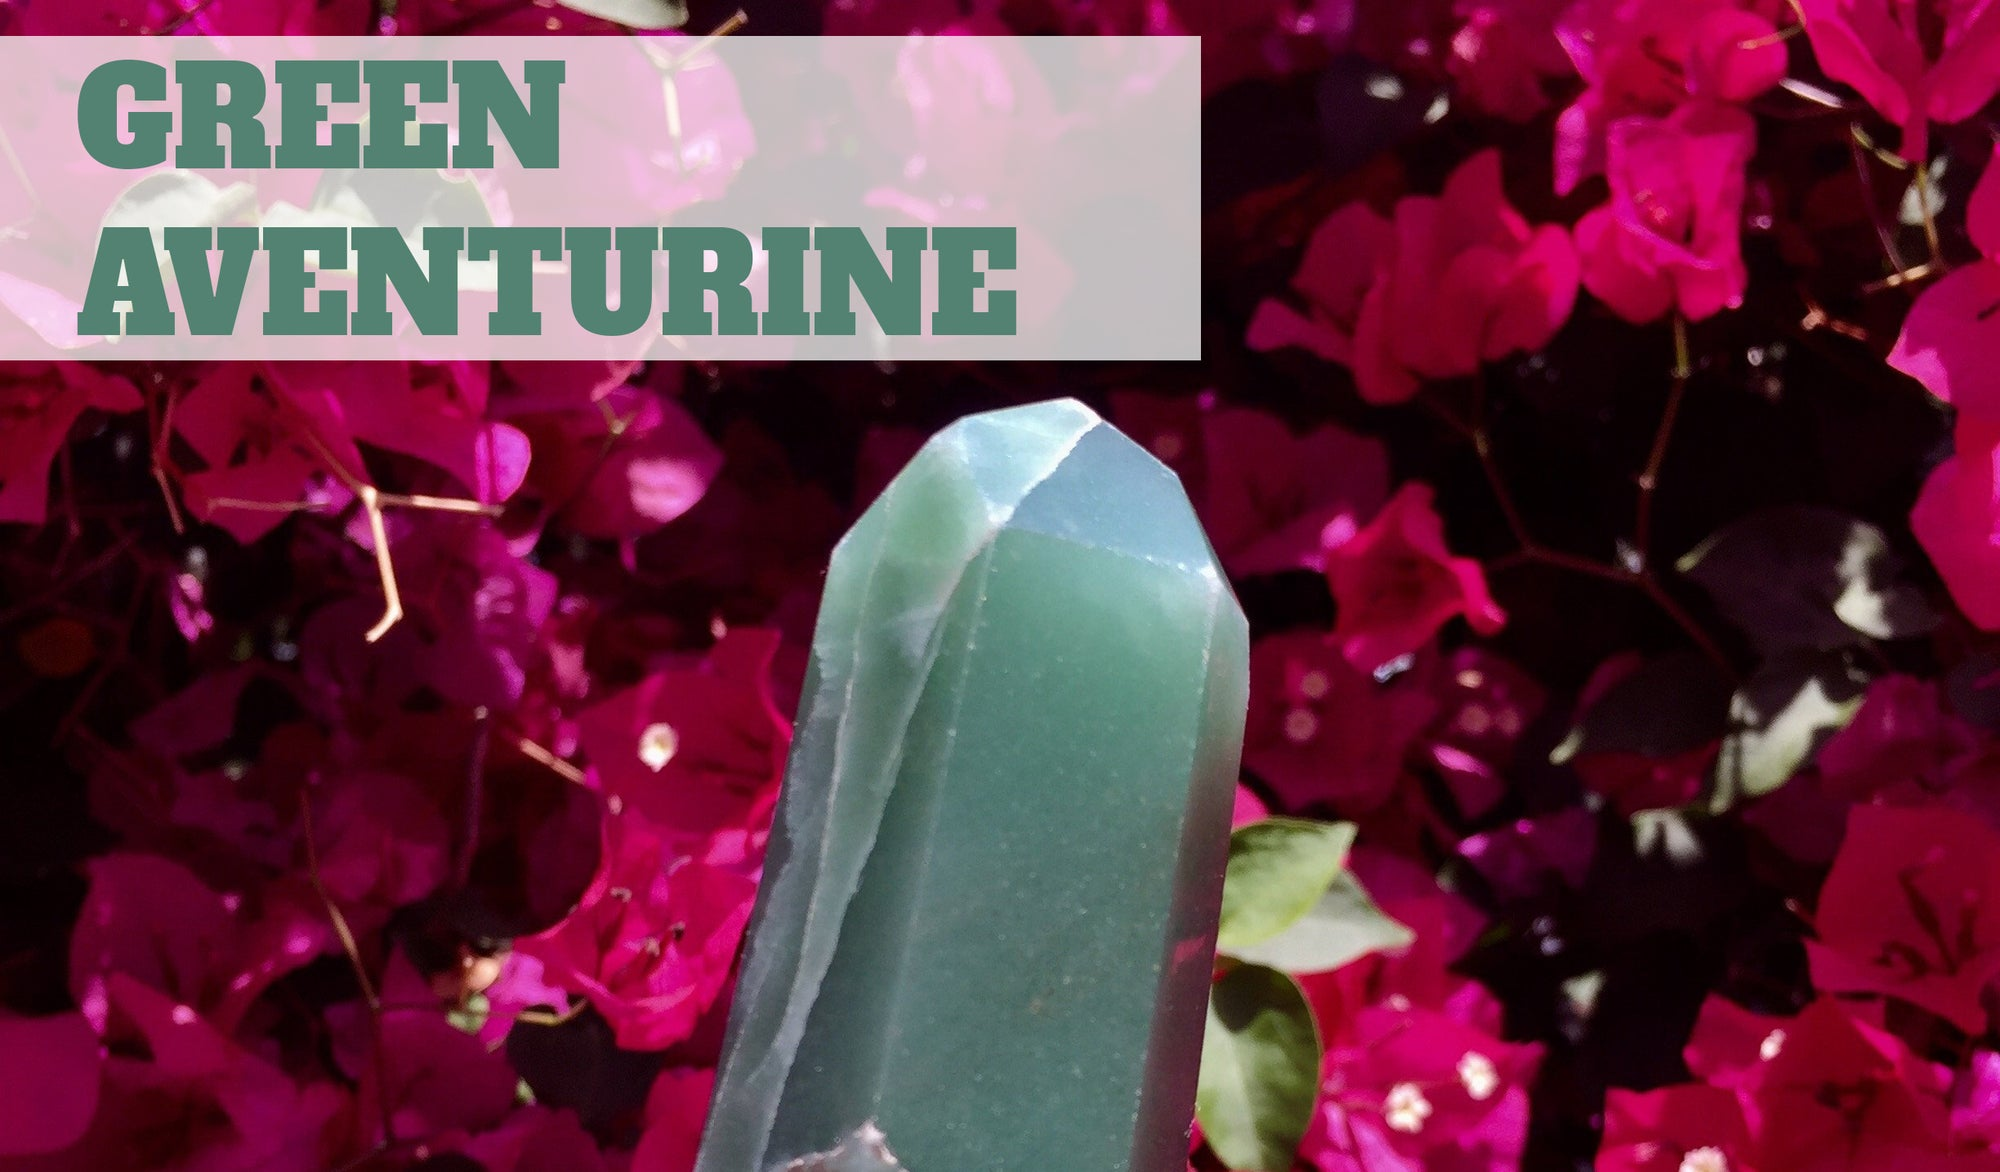 Learn More about Green Aventurine